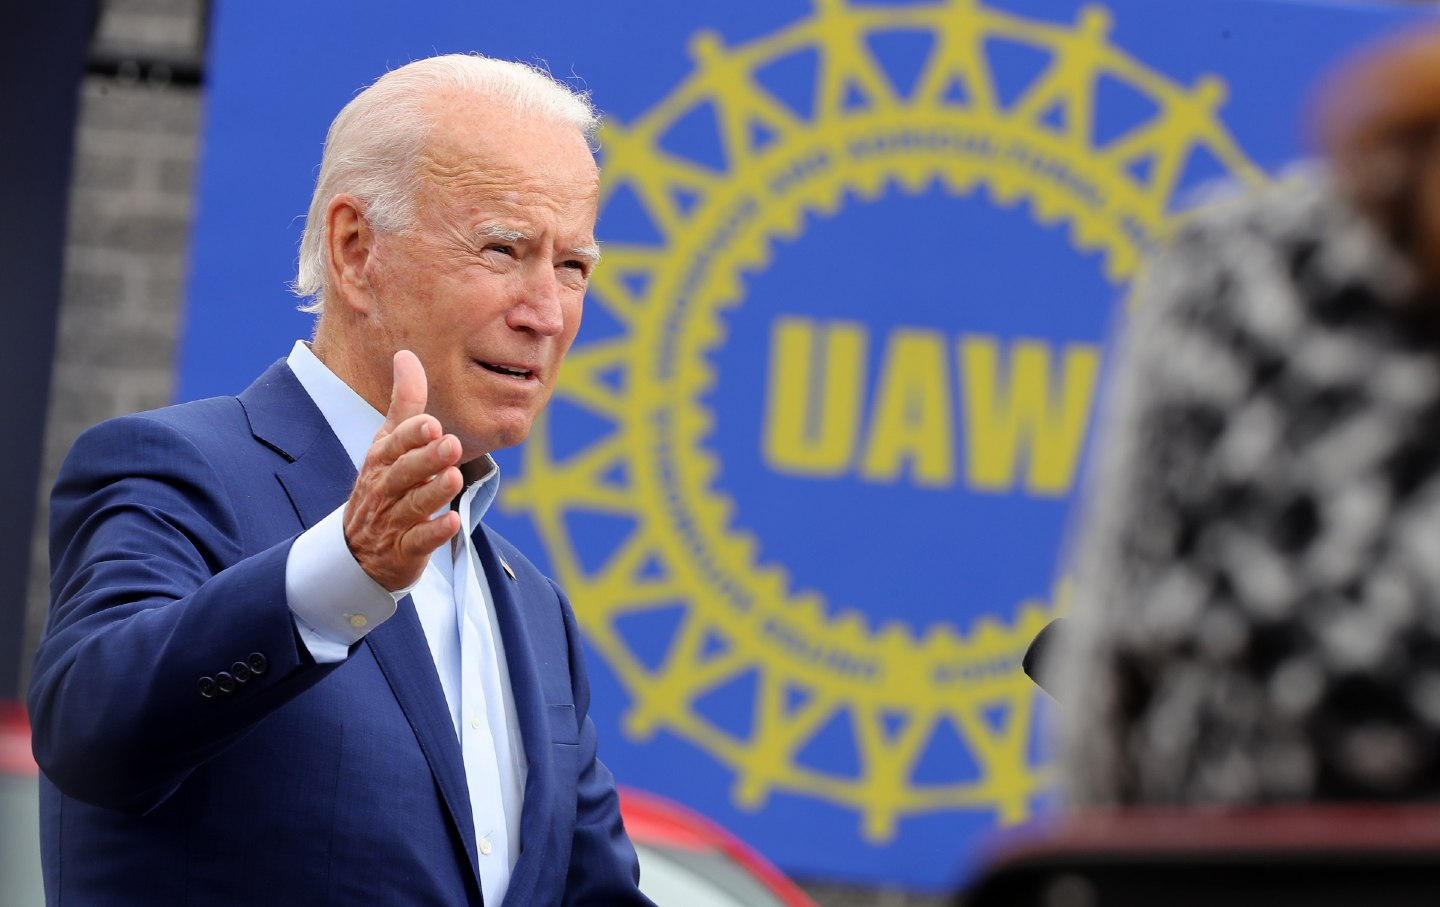 Joe Biden speaks outside UAW offices